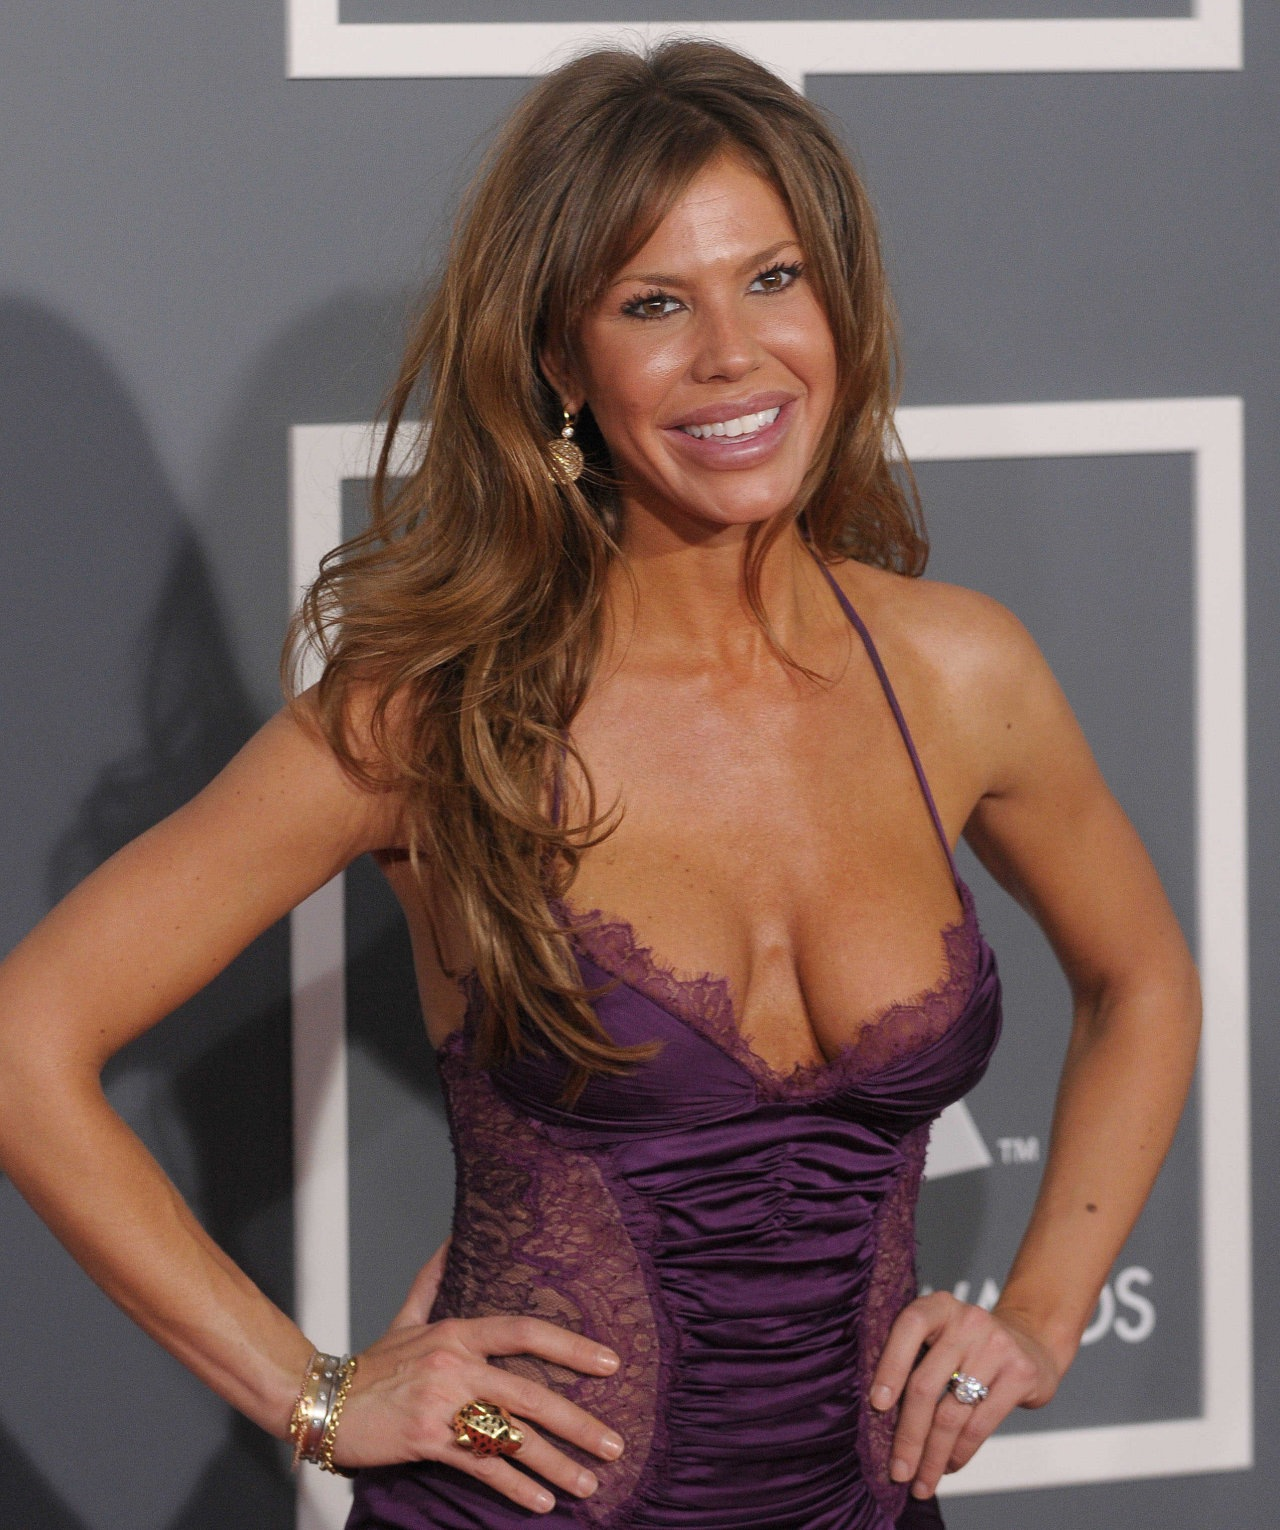 Young Nikki Cox nudes (86 foto and video), Pussy, Cleavage, Instagram, lingerie 2015